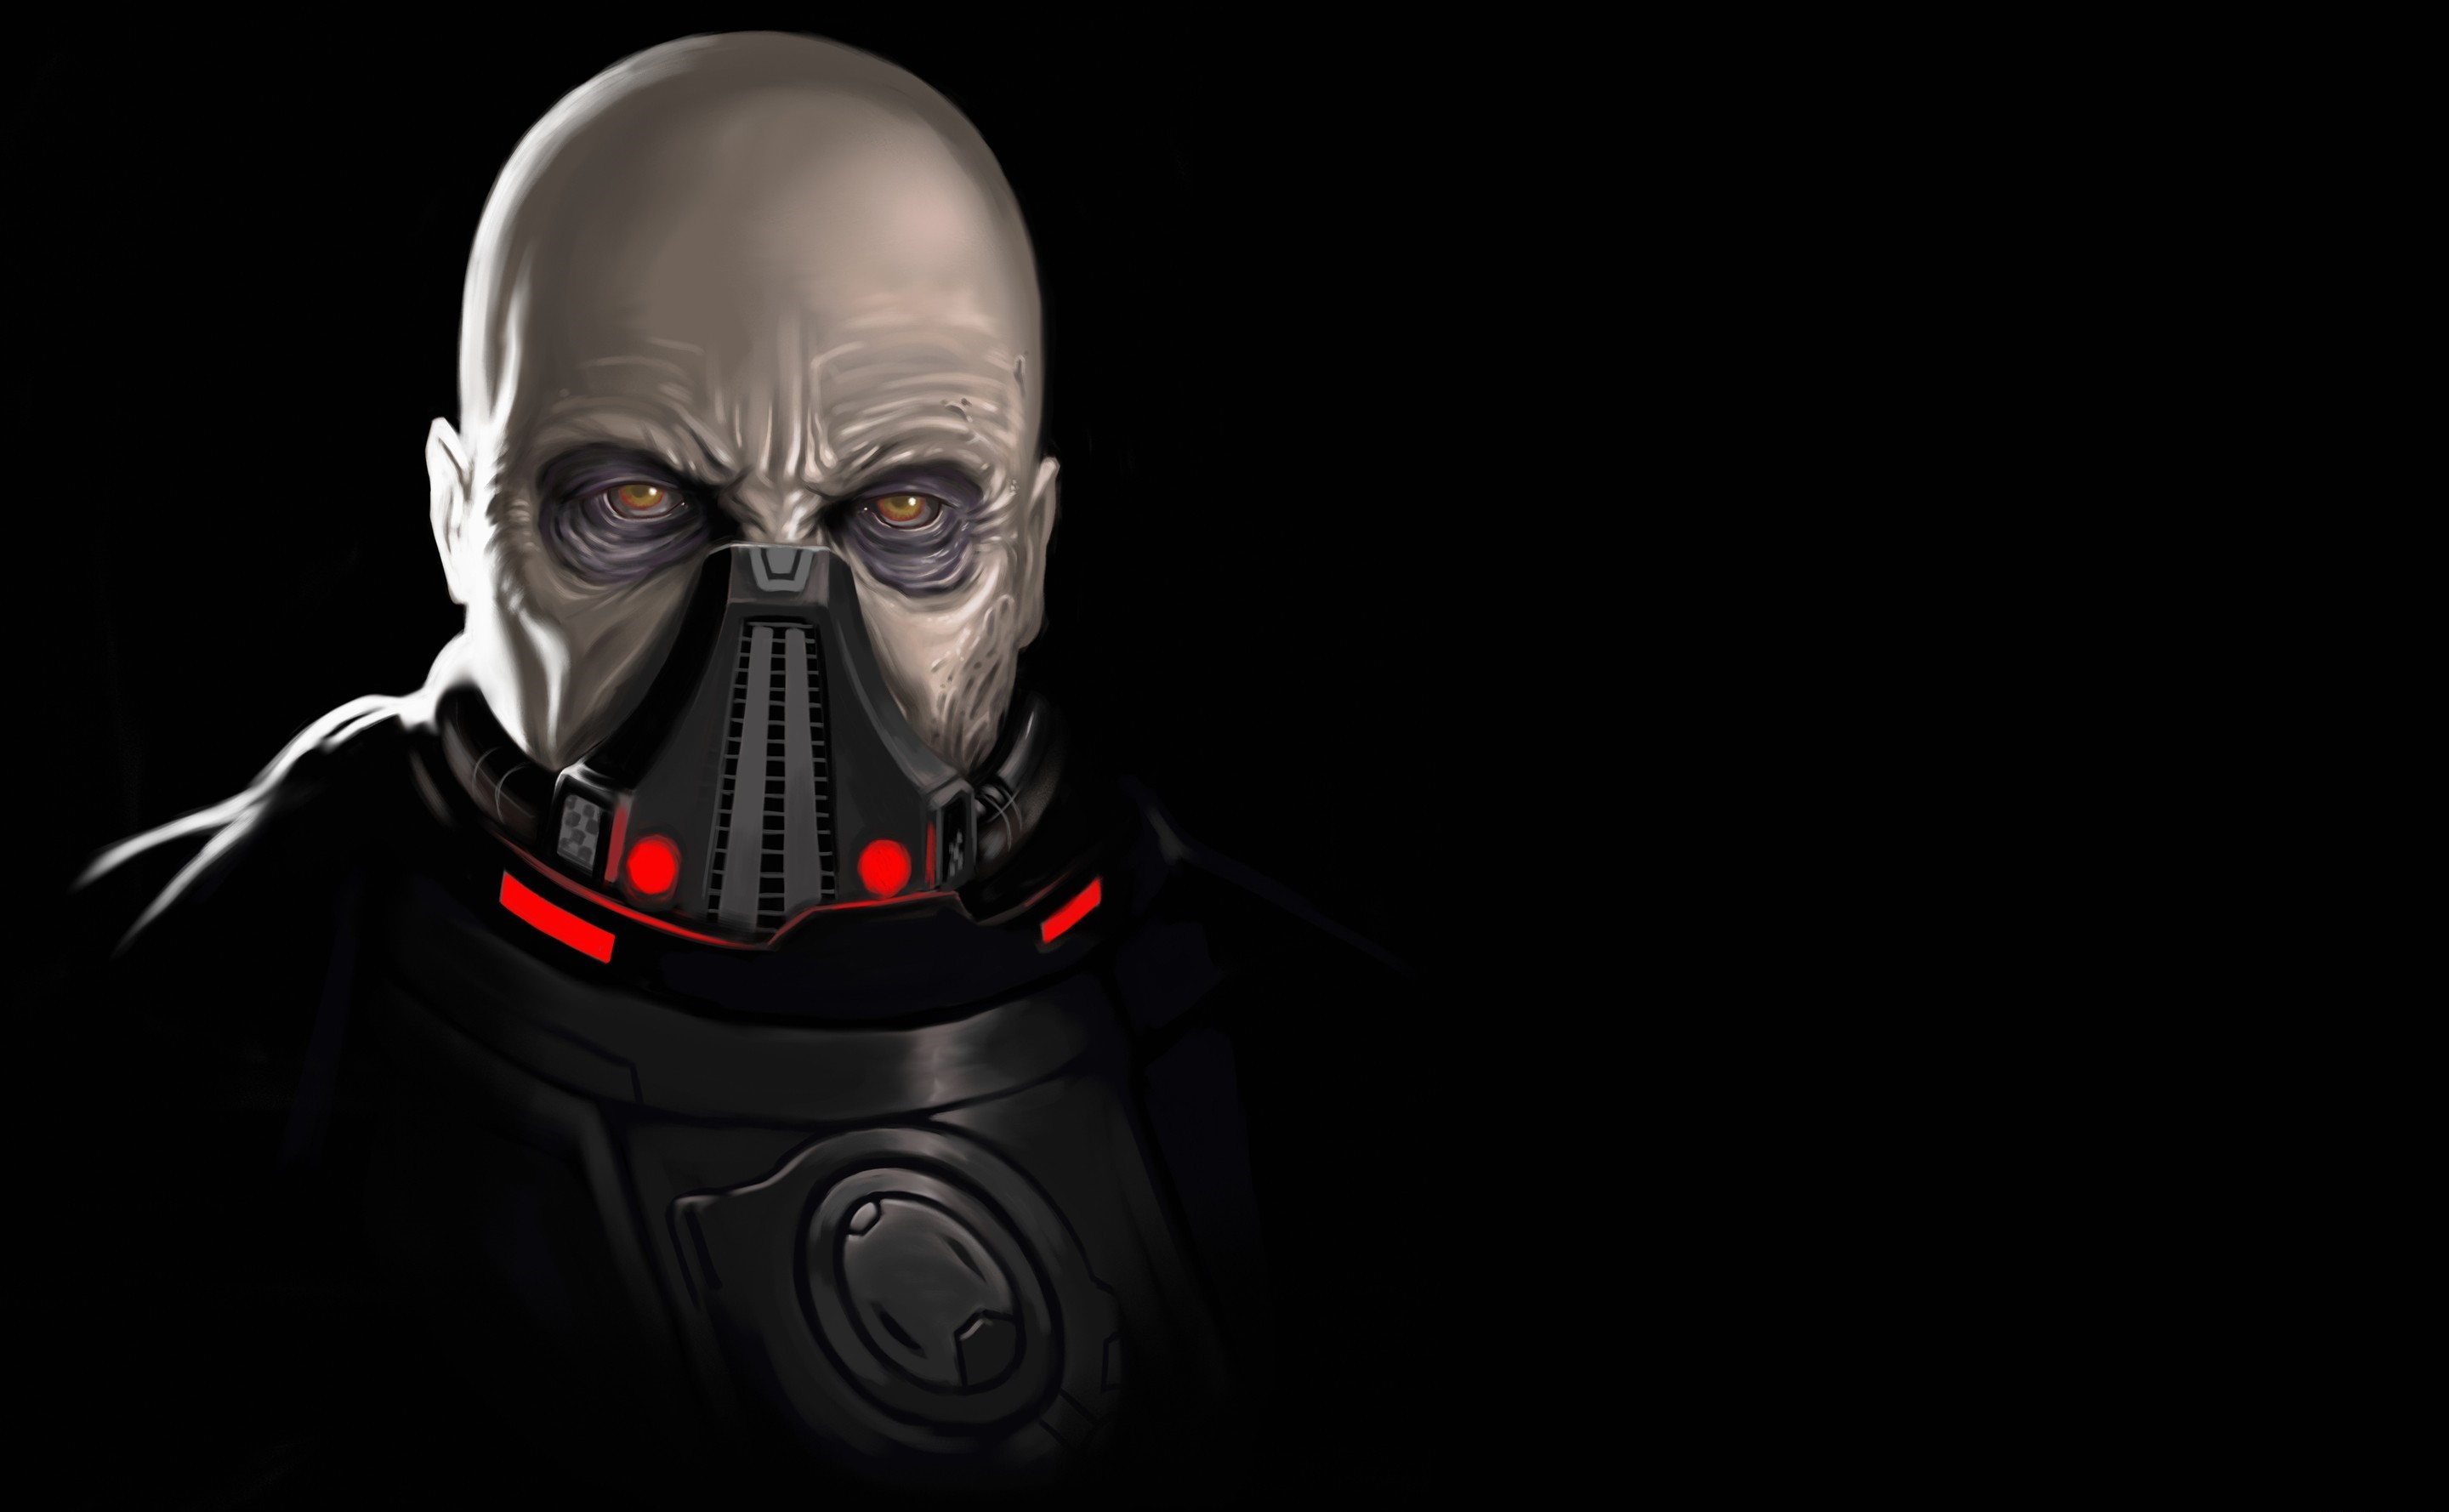 2880x1778 Anakin Skywalker Darth Vader Star Wars Artwork ...